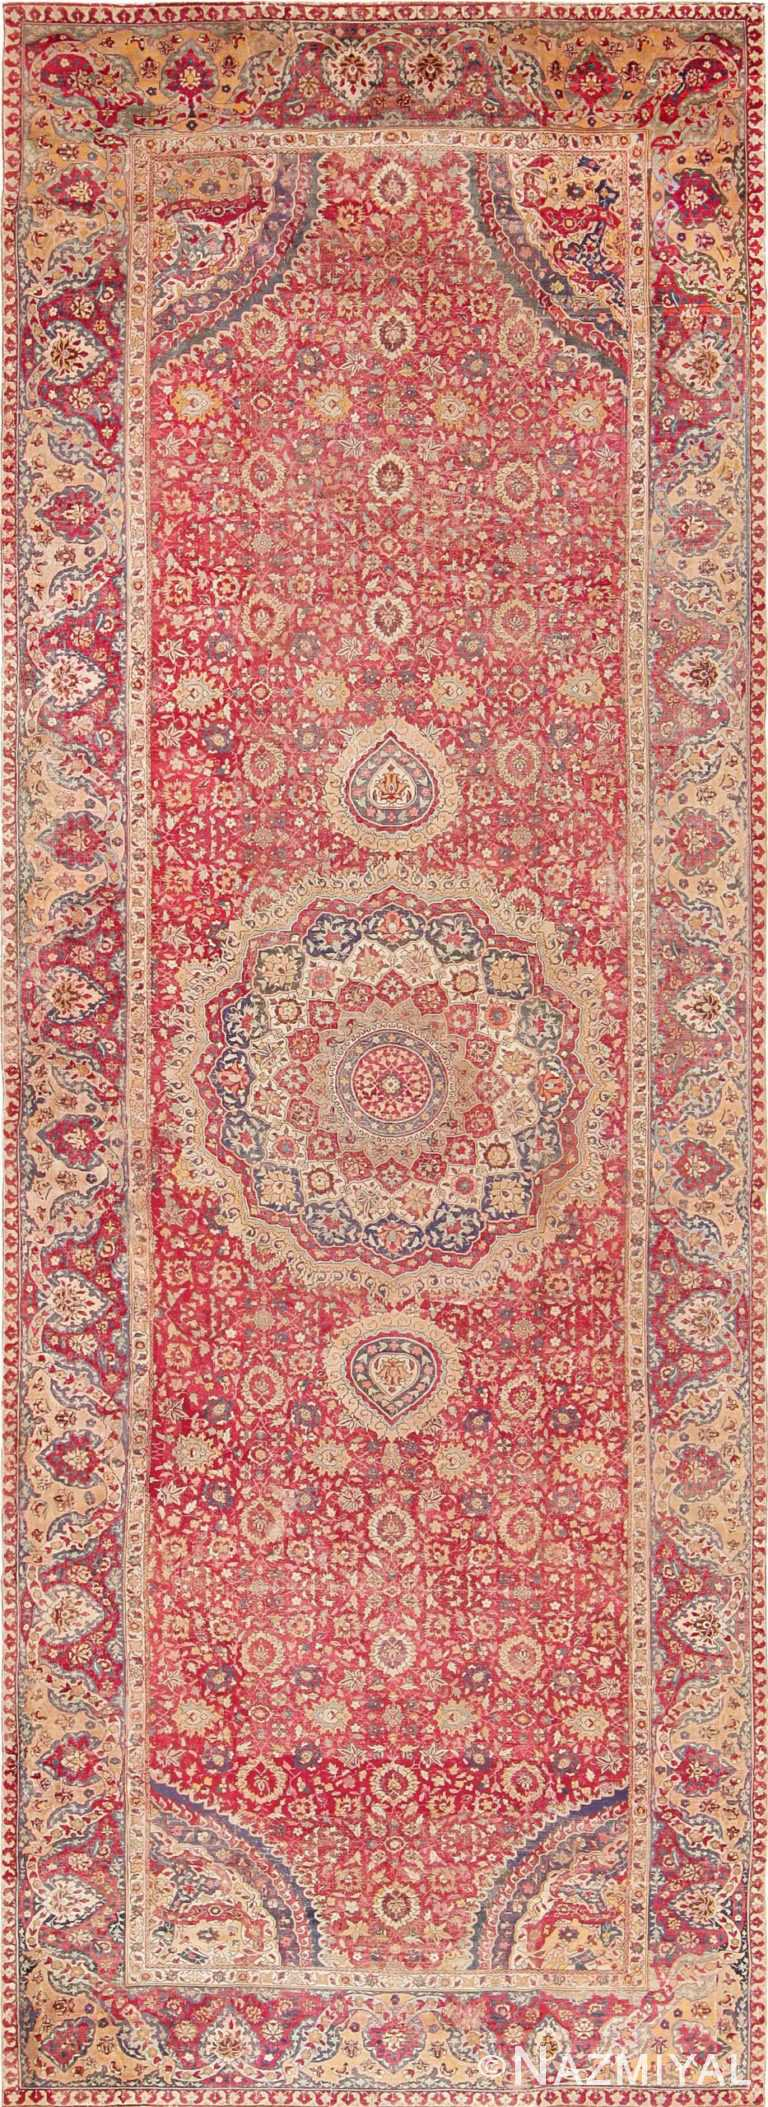 17th Century Mughal Gallery Carpet 47597 Nazmiyal